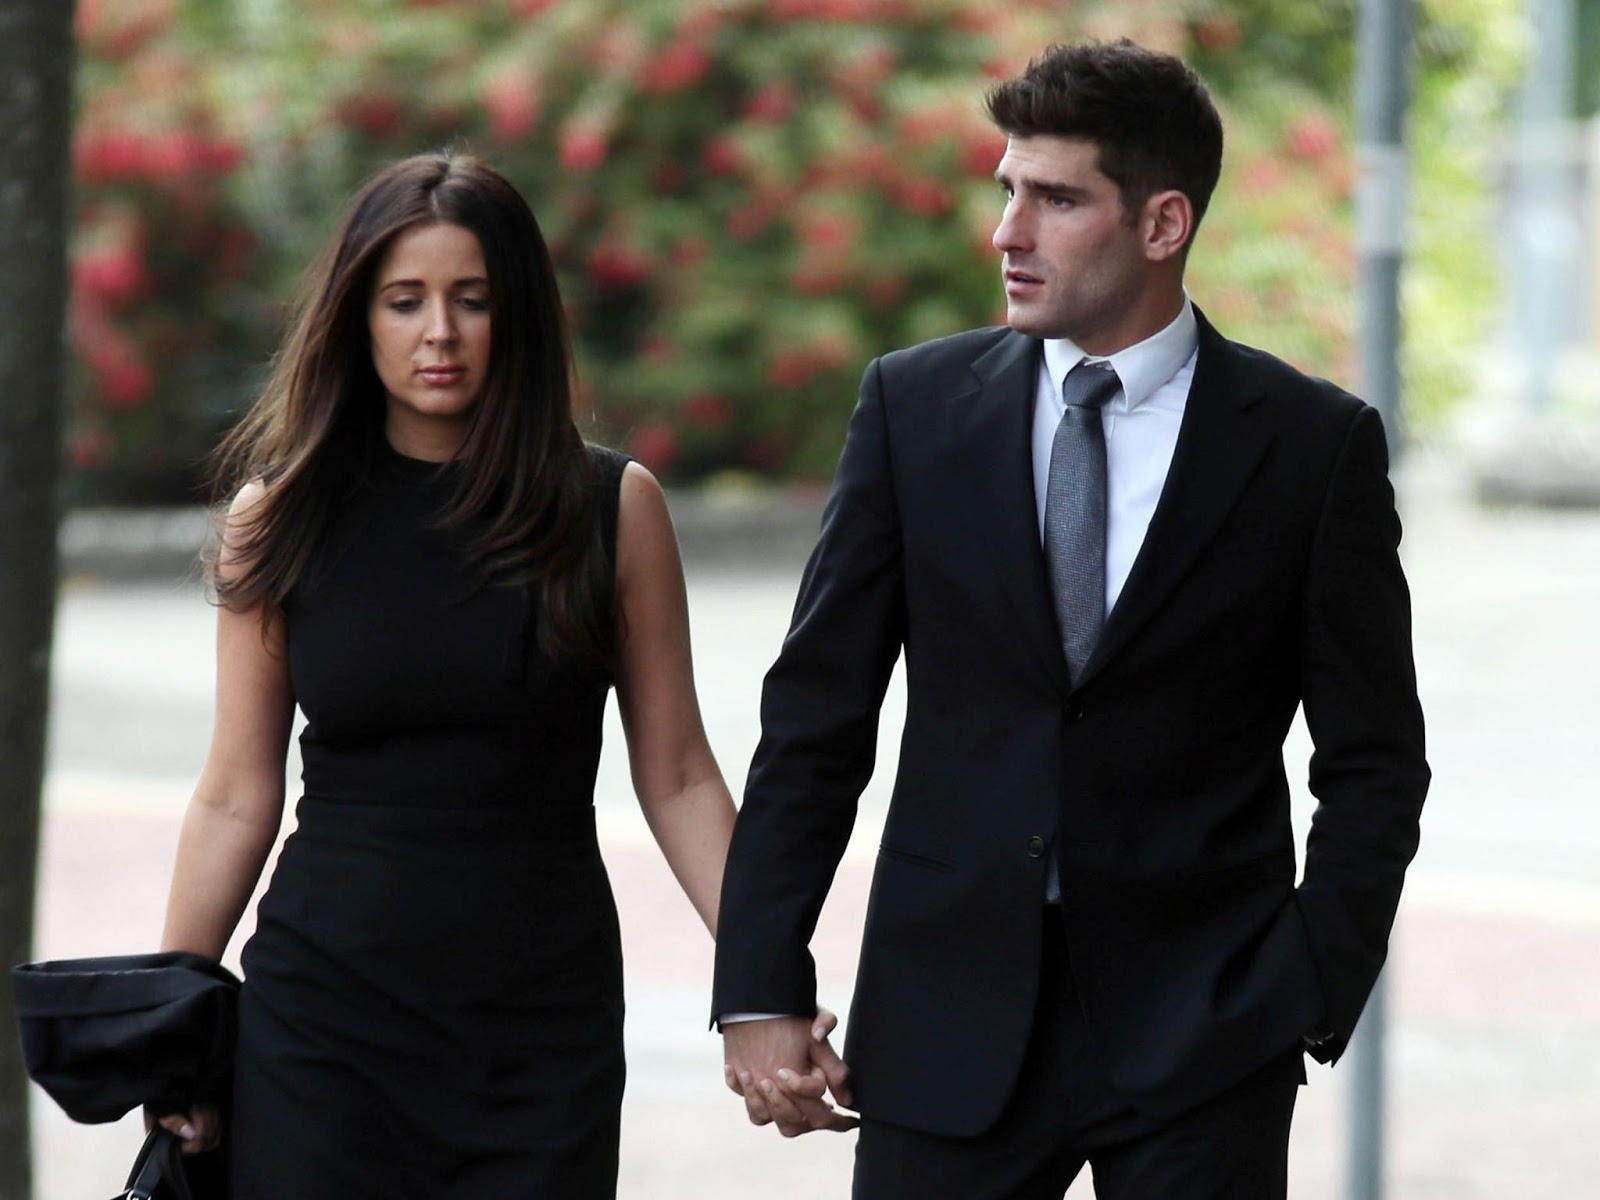 CHED EVANS 7